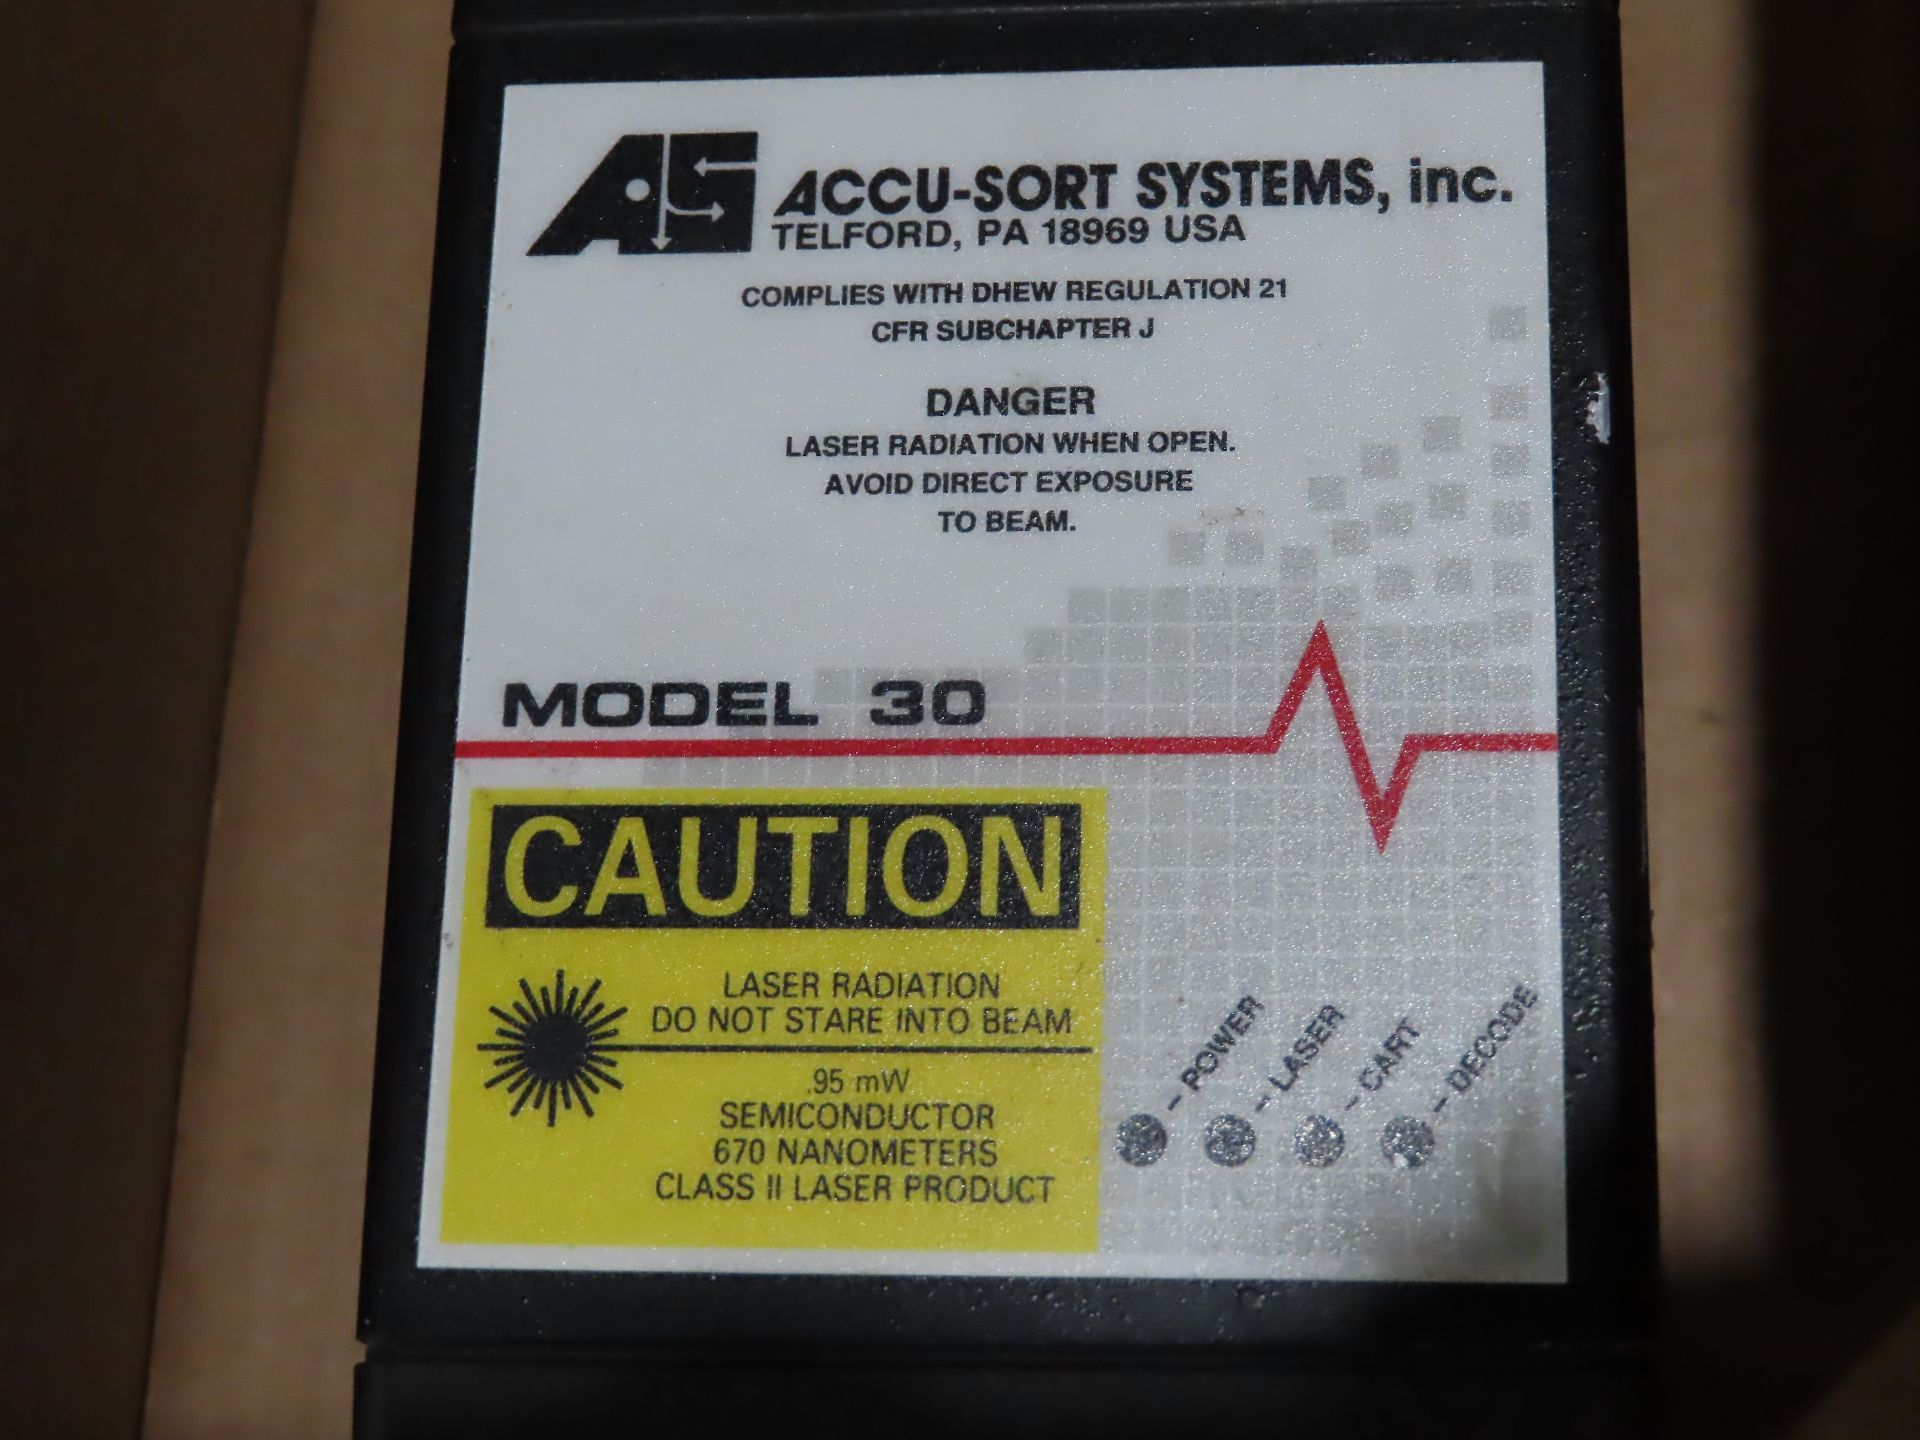 Lot 96 - Accu-Sort systems model 30, as always, with Brolyn LLC auctions, all lots can be picked up from